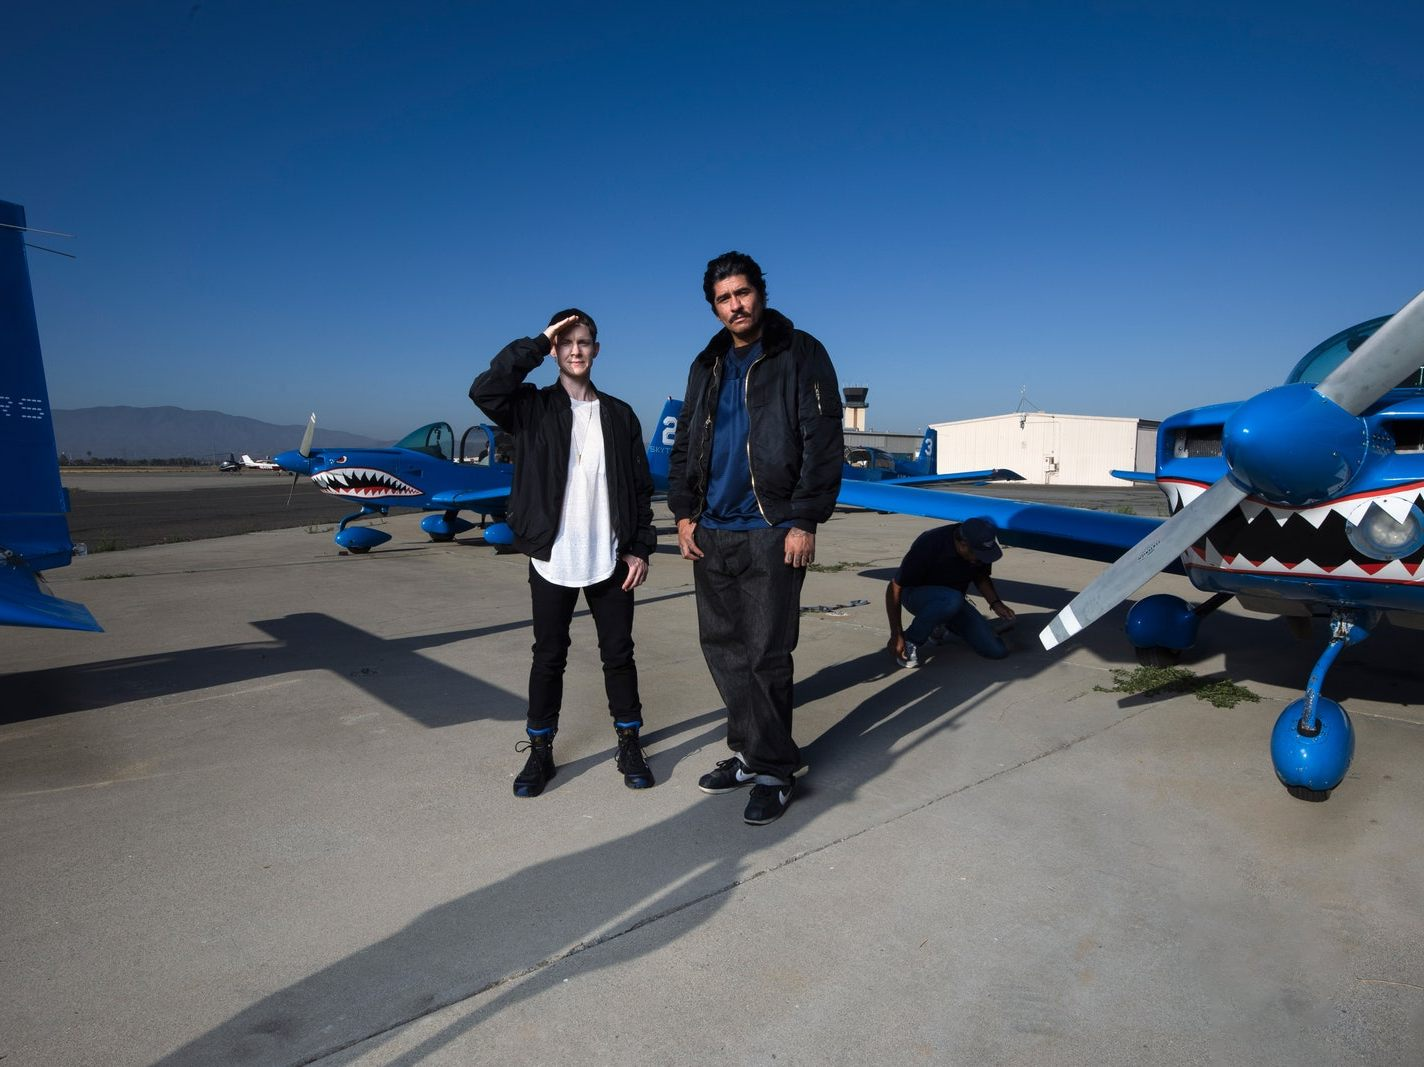 Rafa Esparza and Cassils stand in front of a plane